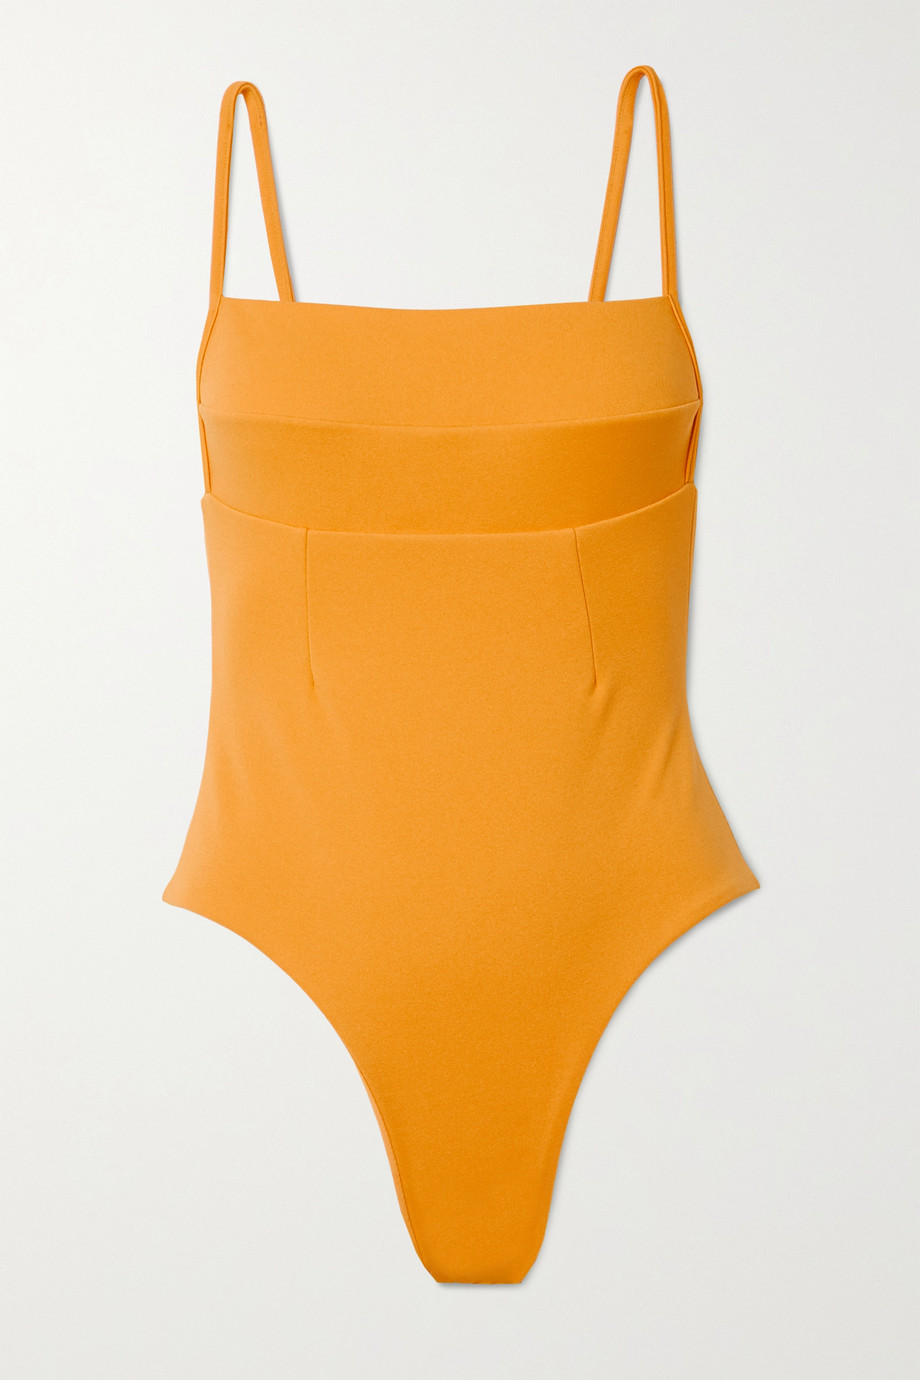 Haight Paula stretch-crepe swimsuit